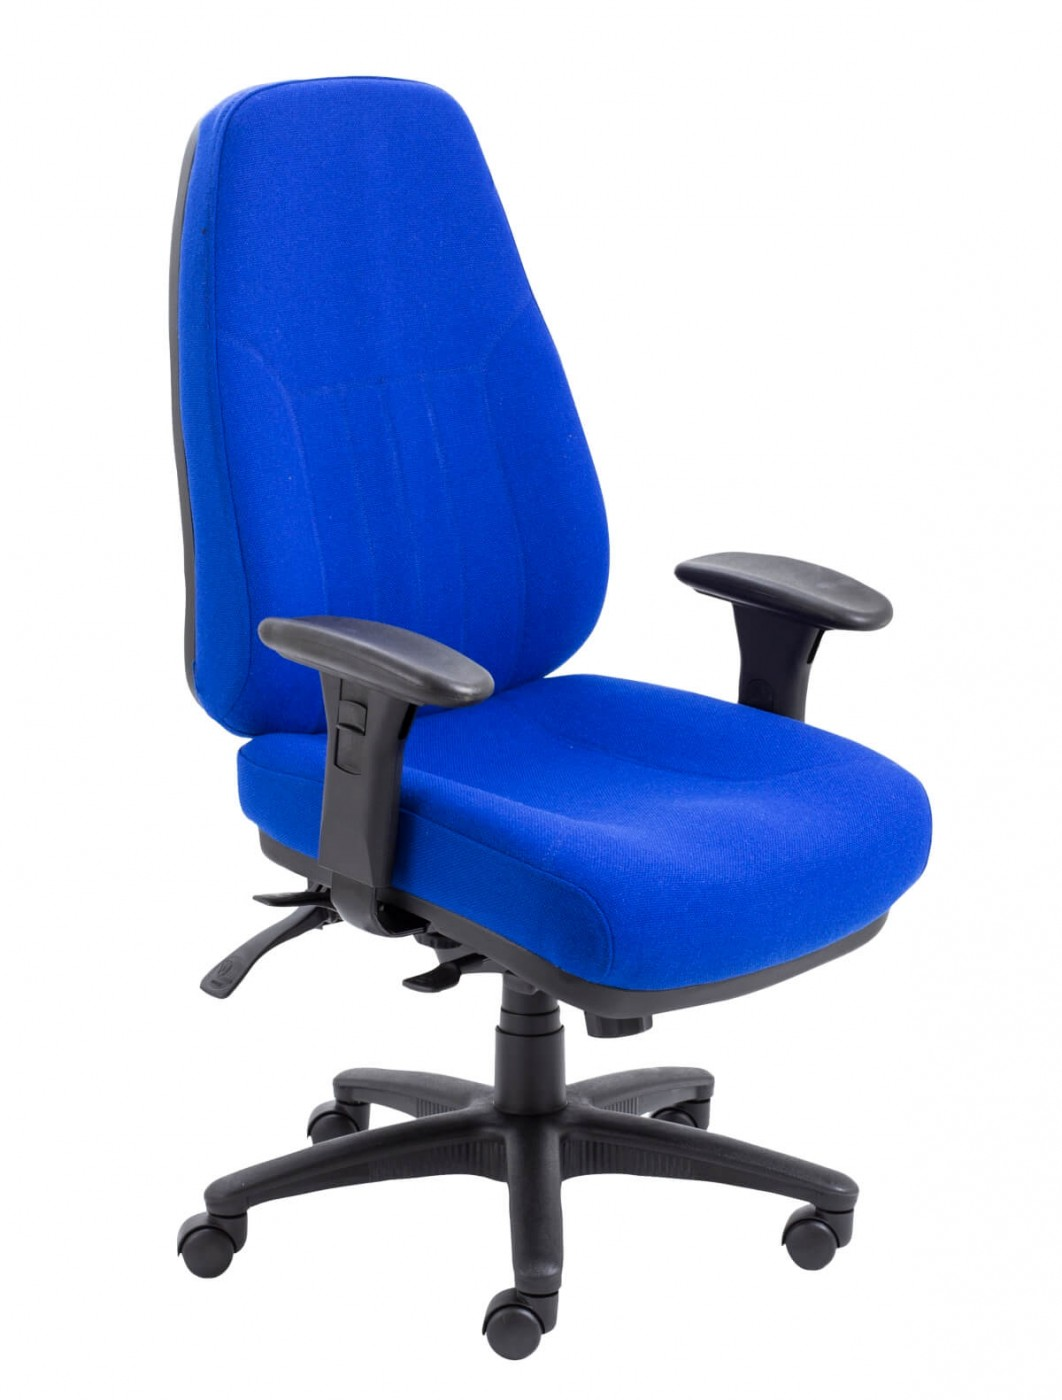 fabric office chairs uk chair covers hire durban panther 24 hour